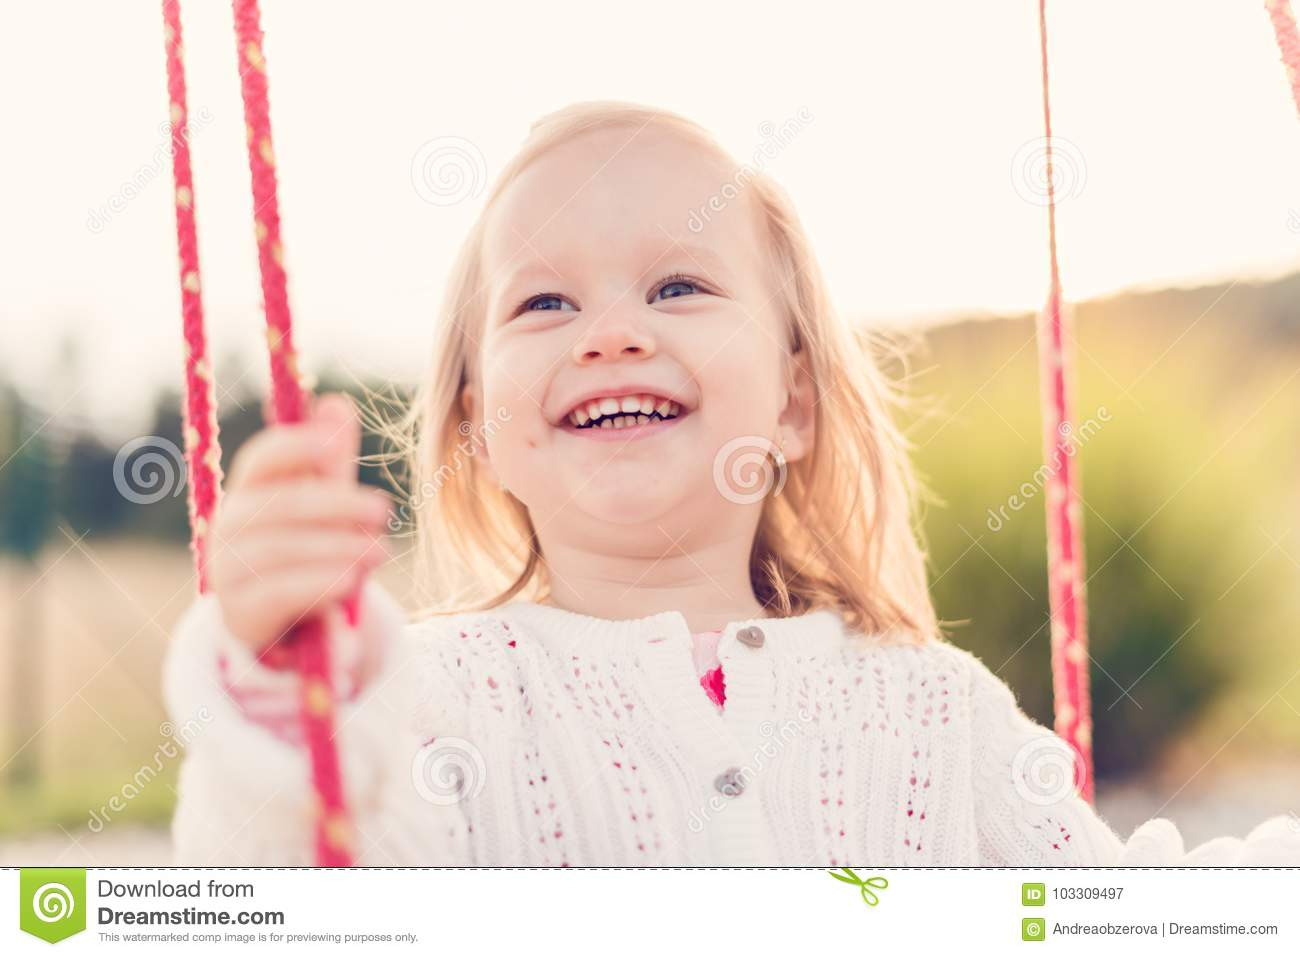 Little girl swinging on a playground. Childhood, Happy, Summer Outdoor Concept